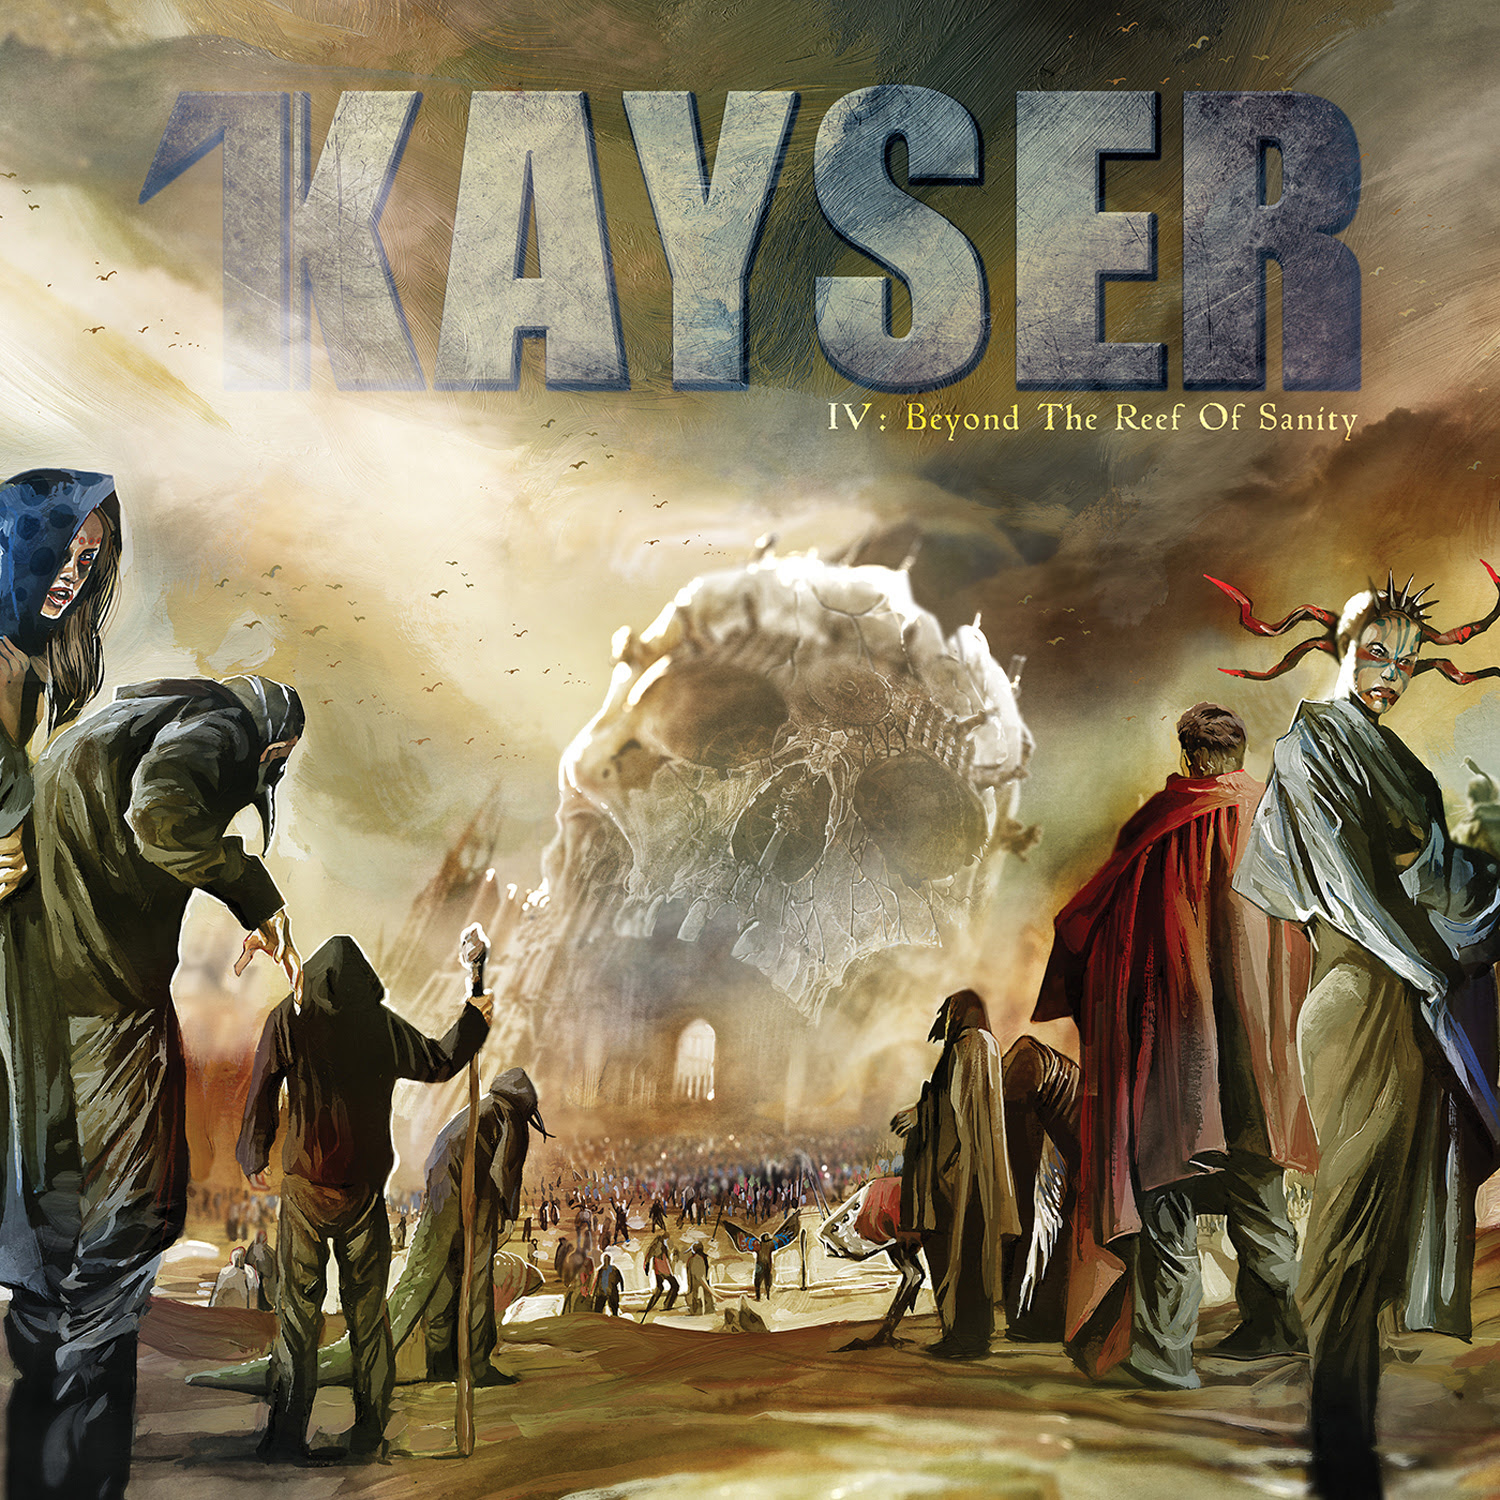 Kayser 2016 Artwork